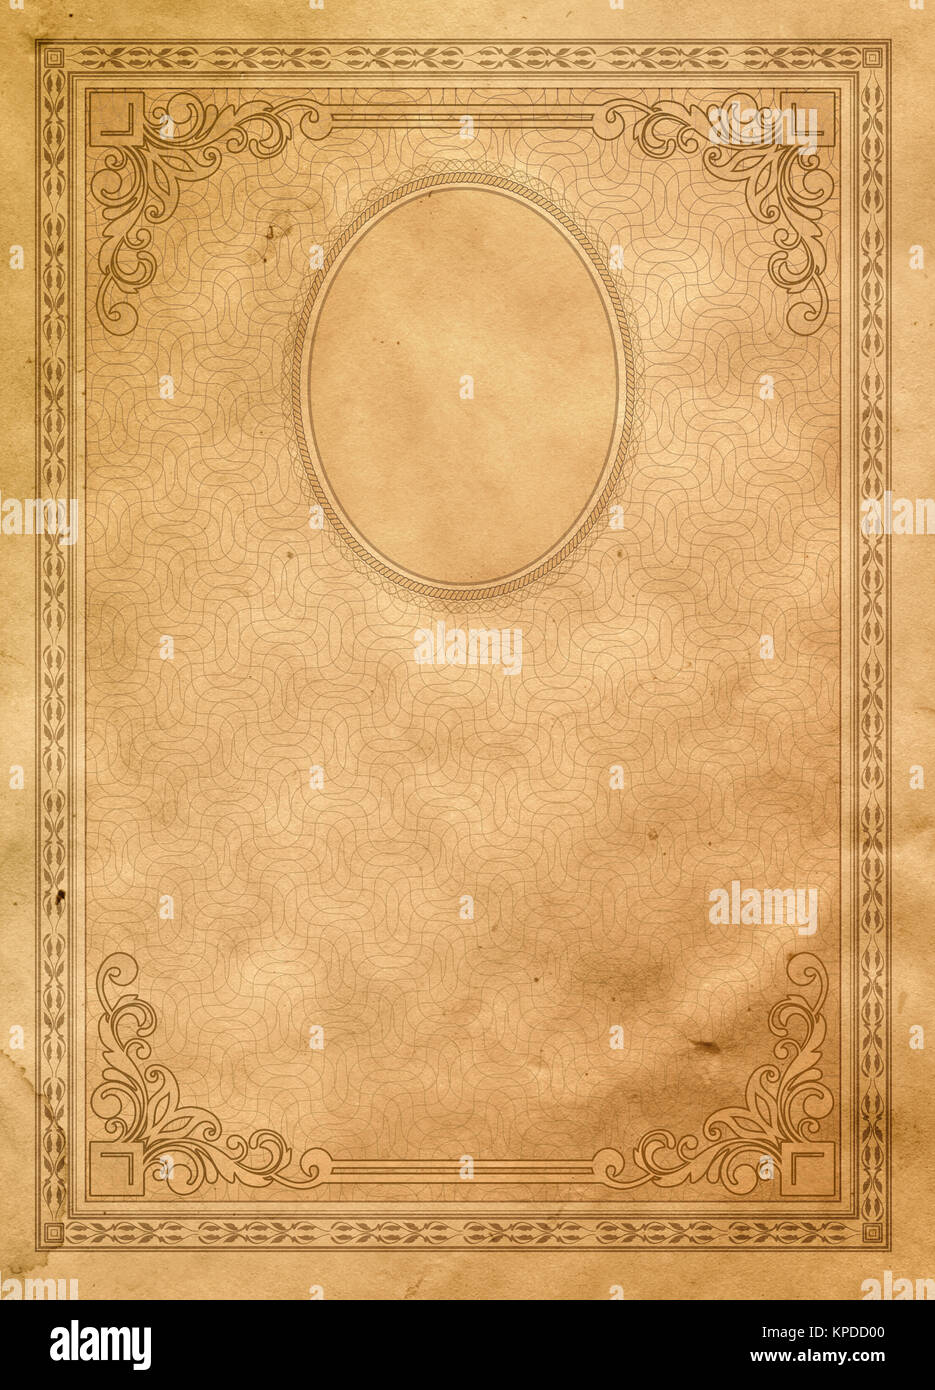 Aging Paper Background With Decorative Old Fashioned Borderelegant